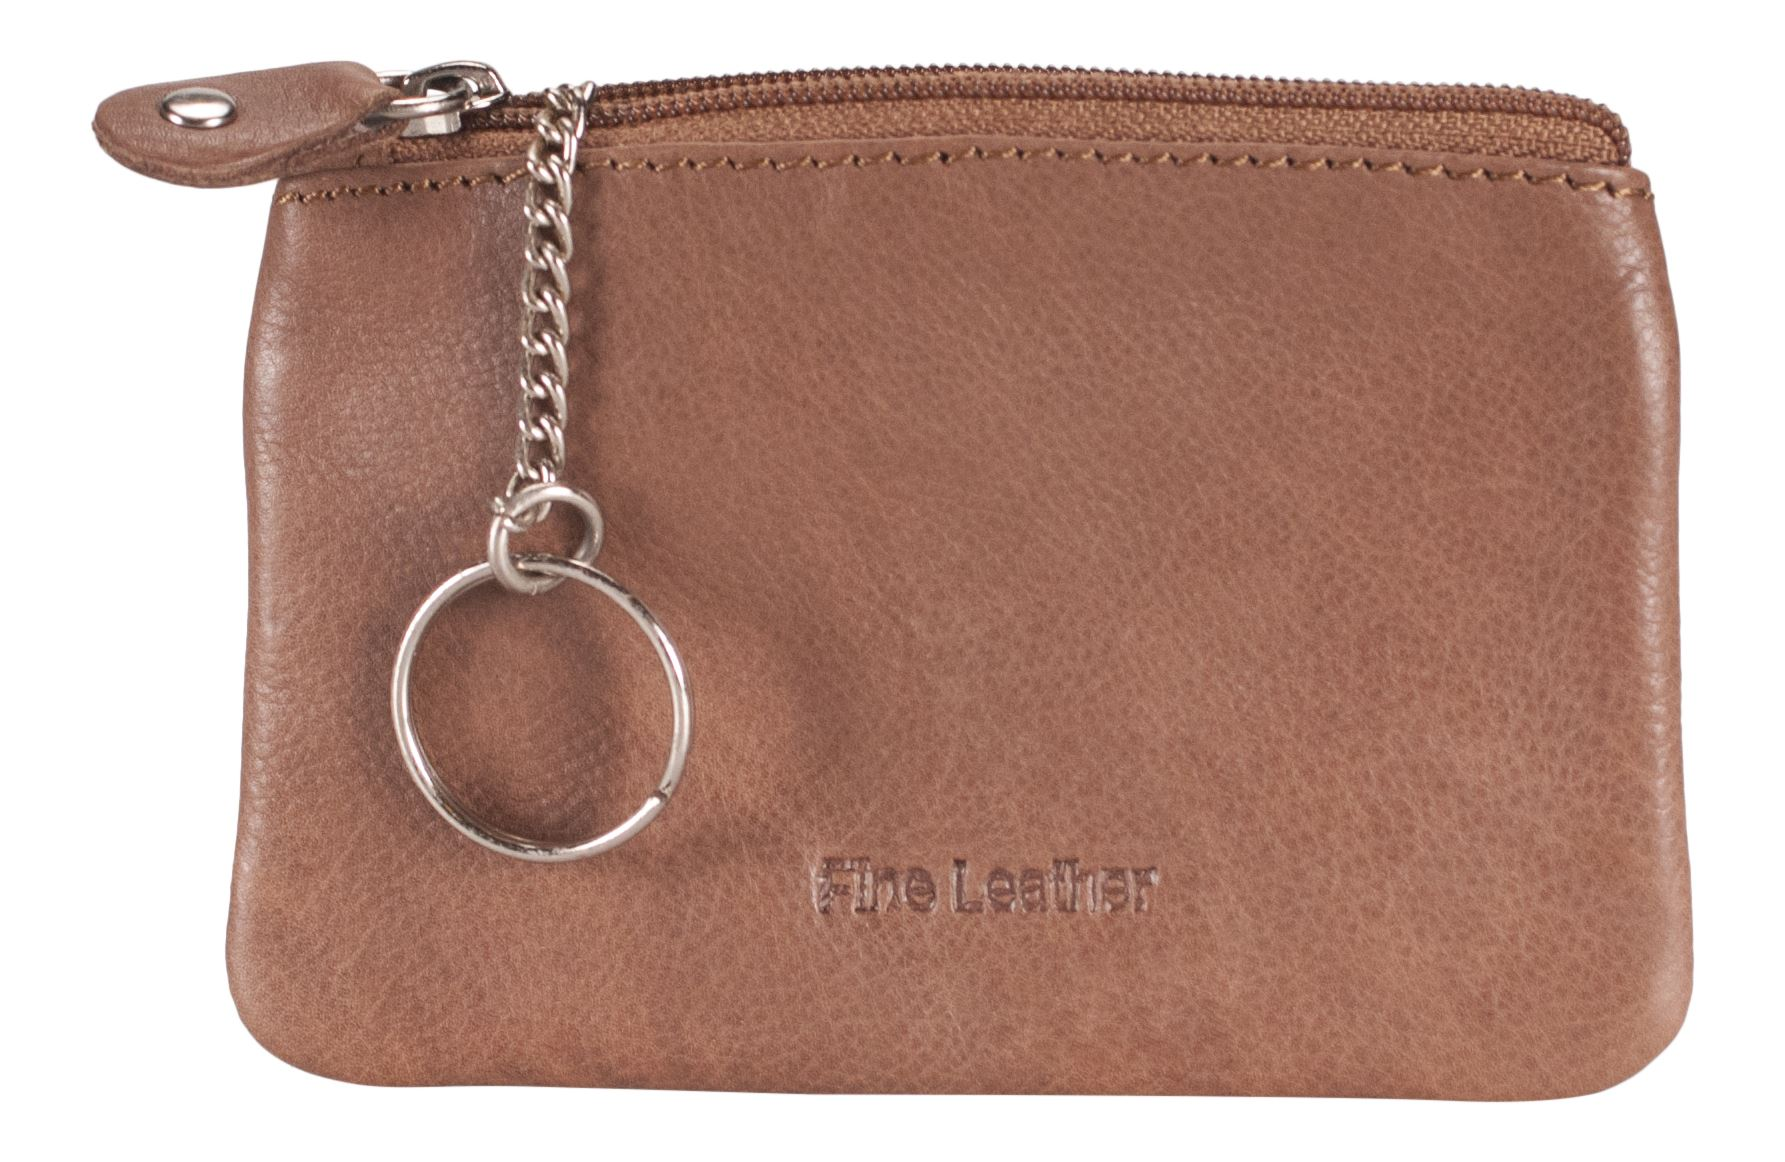 Brunhide-Ladies-Small-Leather-Coin-Purse-Credit-Card-Key-Ring-Wallet-211-300